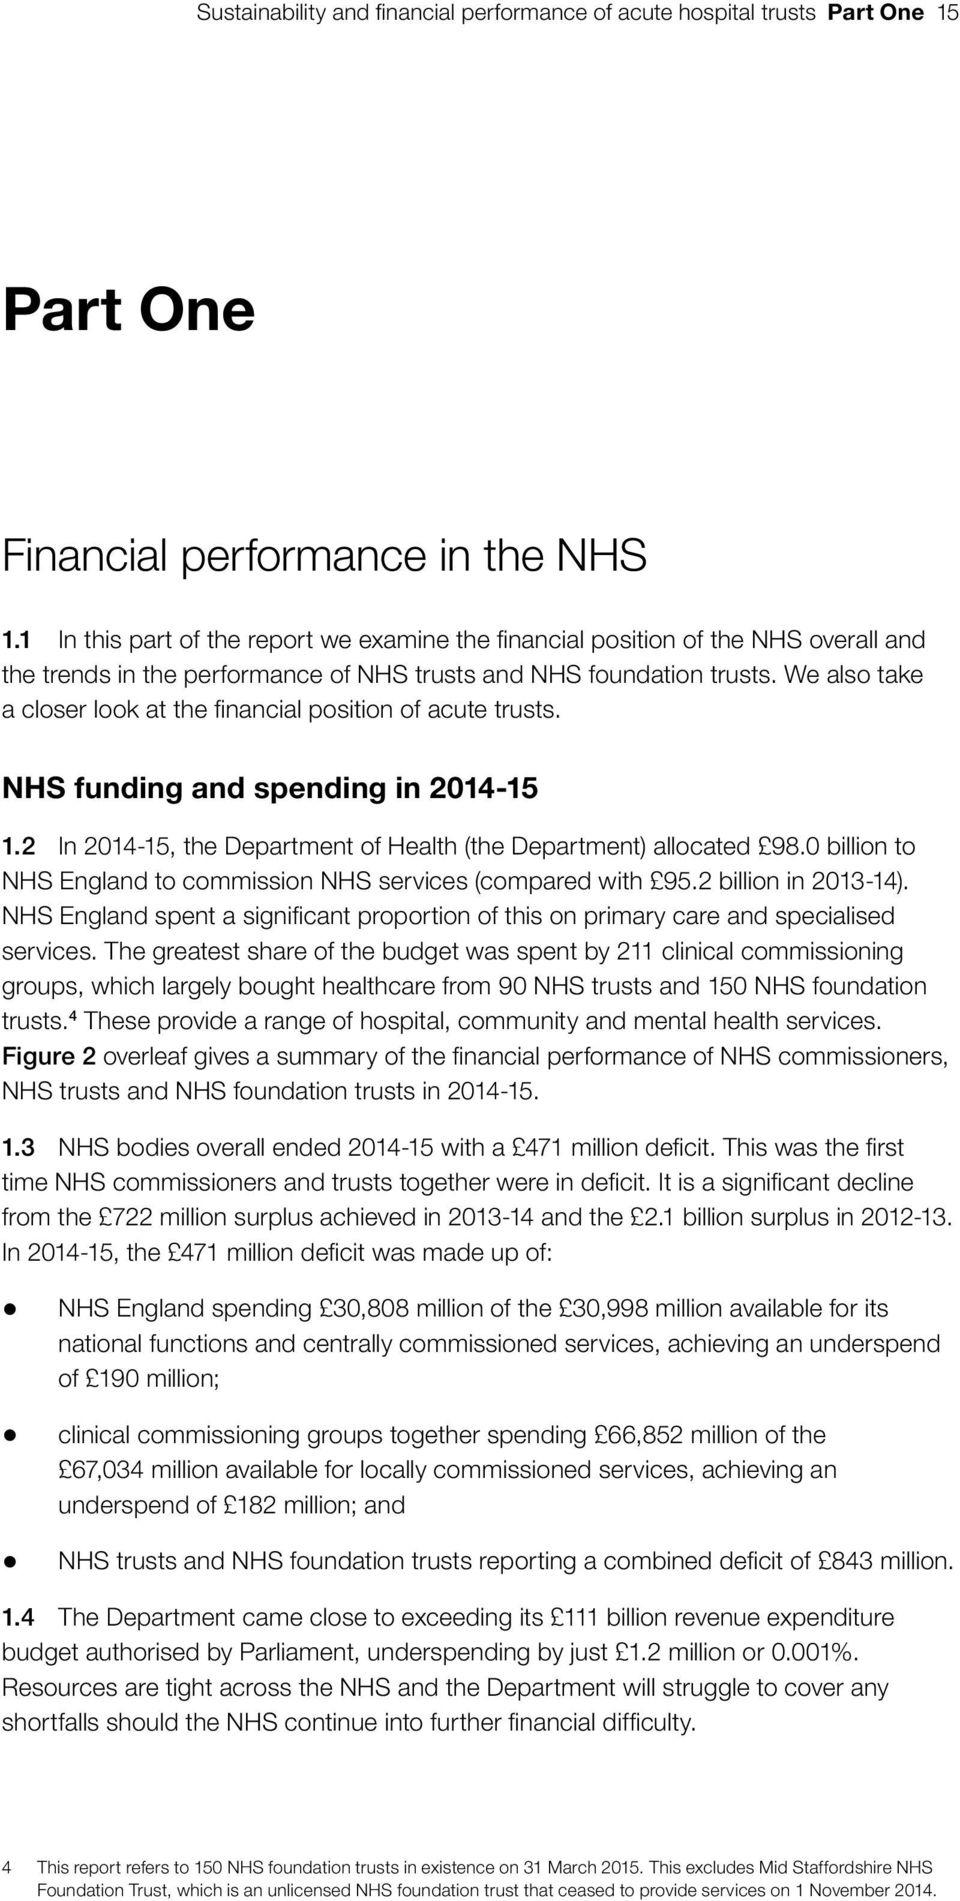 We also take a closer look at the financial position of acute trusts. NHS funding and spending in 2014-15 1.2 In 2014-15, the Department of Health (the Department) allocated 98.